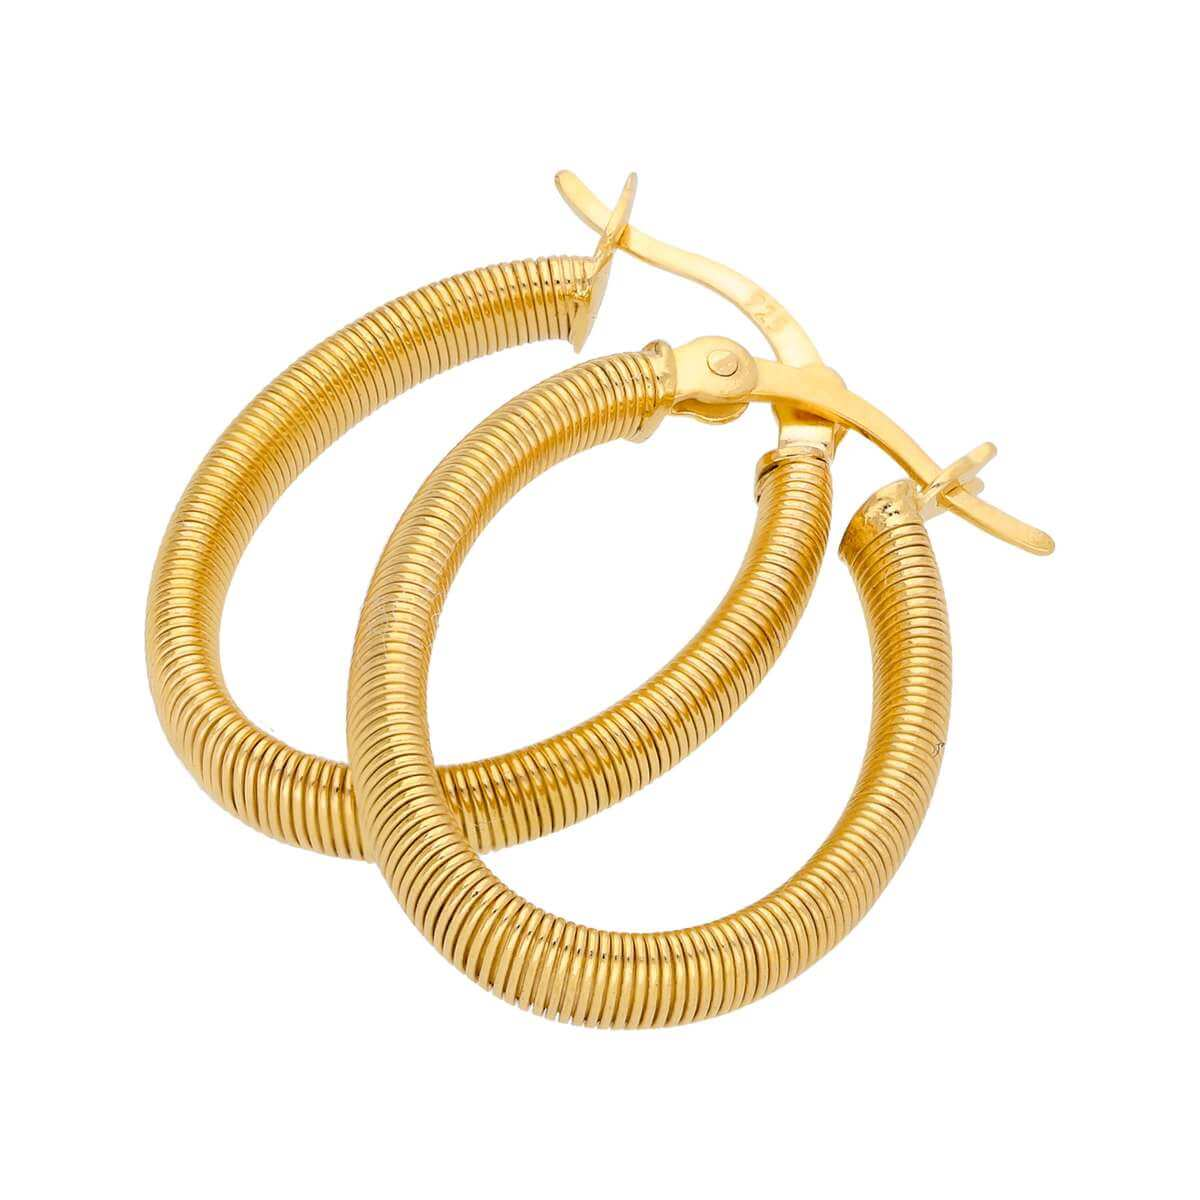 Gold Plated Sterling Silver Oval Creole Hoop Earrings